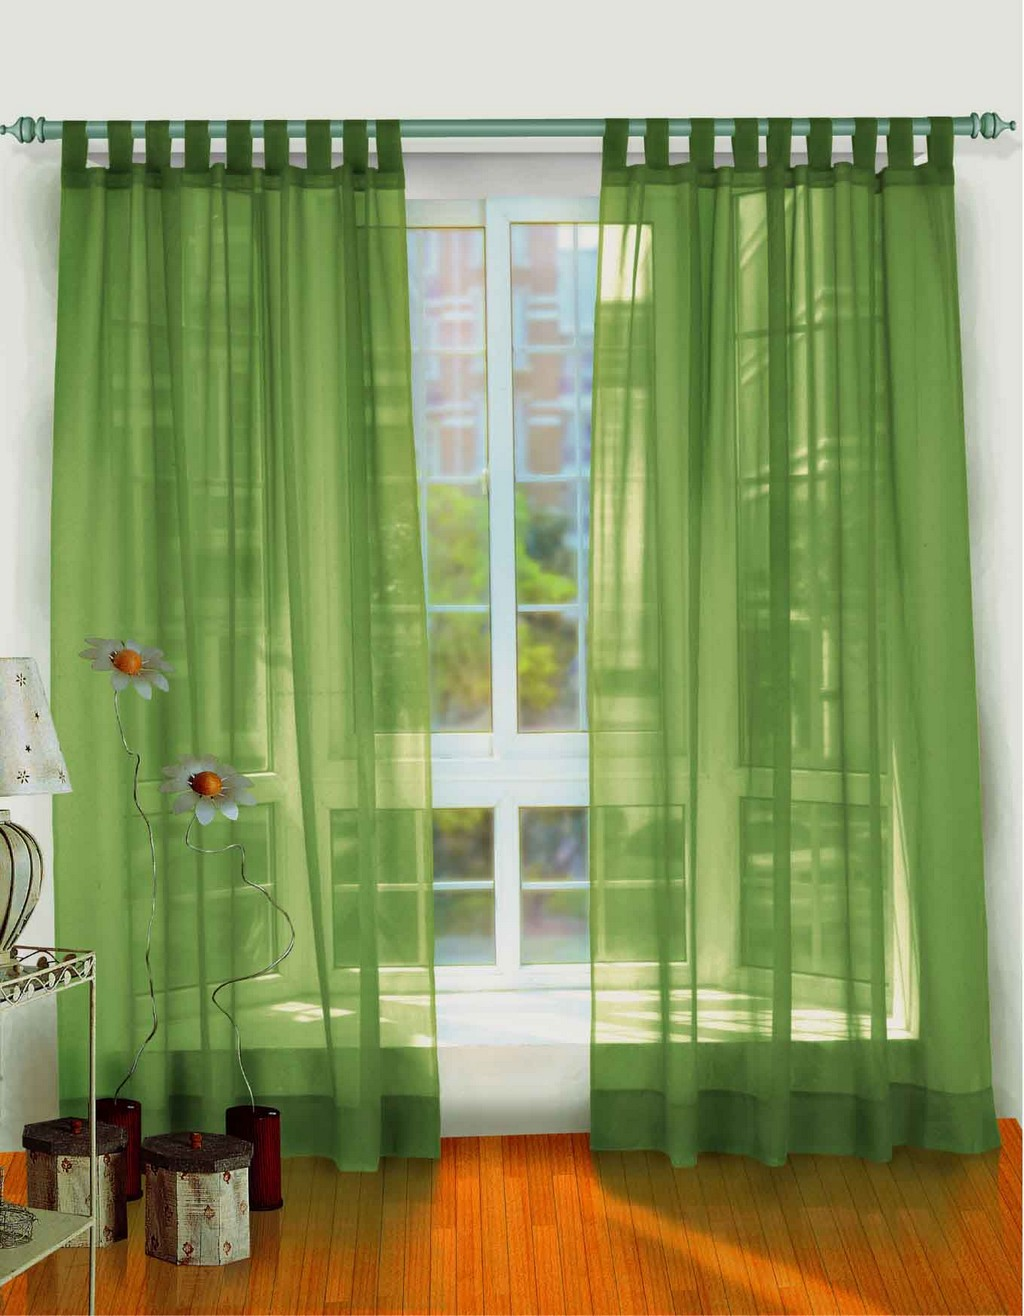 curtain rods country curtains style home accesories, black white kitchen curtains, wood curtain rods, plaid kitchen curtains